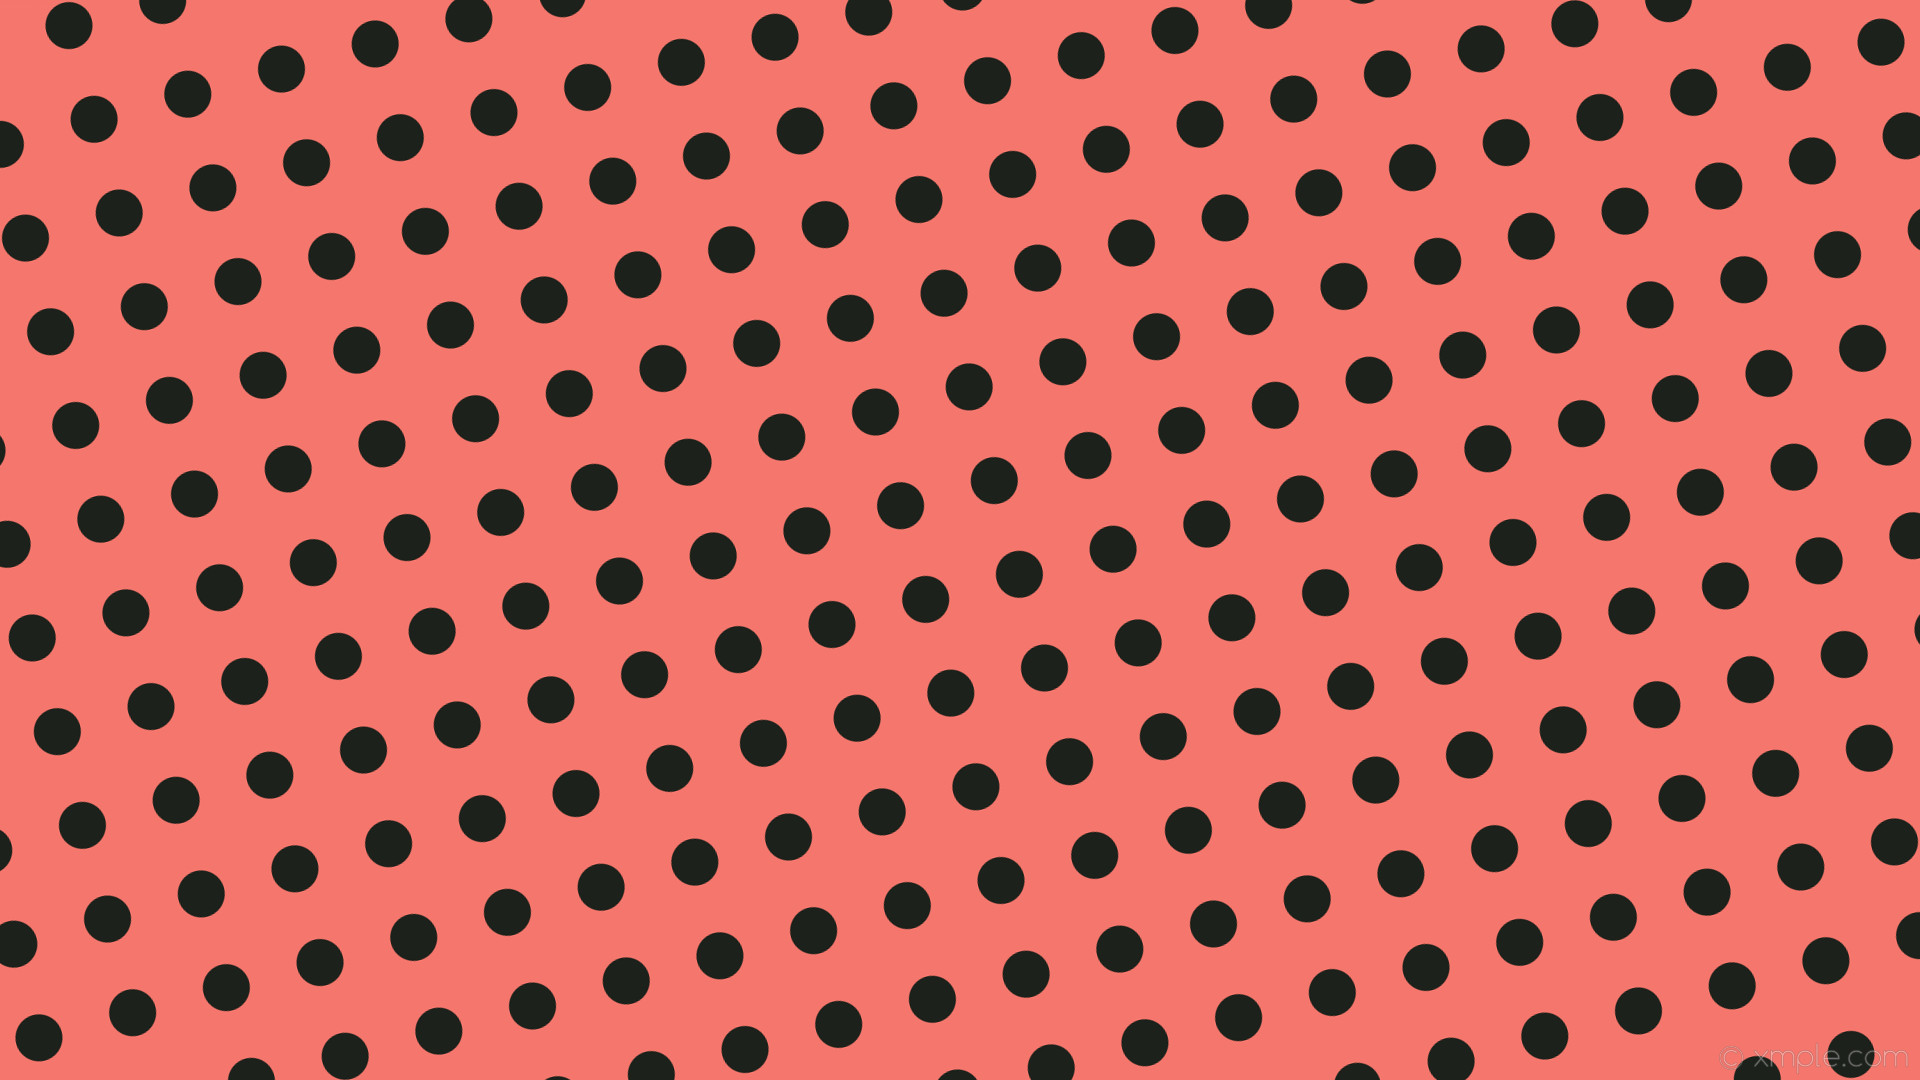 1920x1080 wallpaper spots lime dots red polka dark lime #f4766c #1d211b 105° 47px 97px